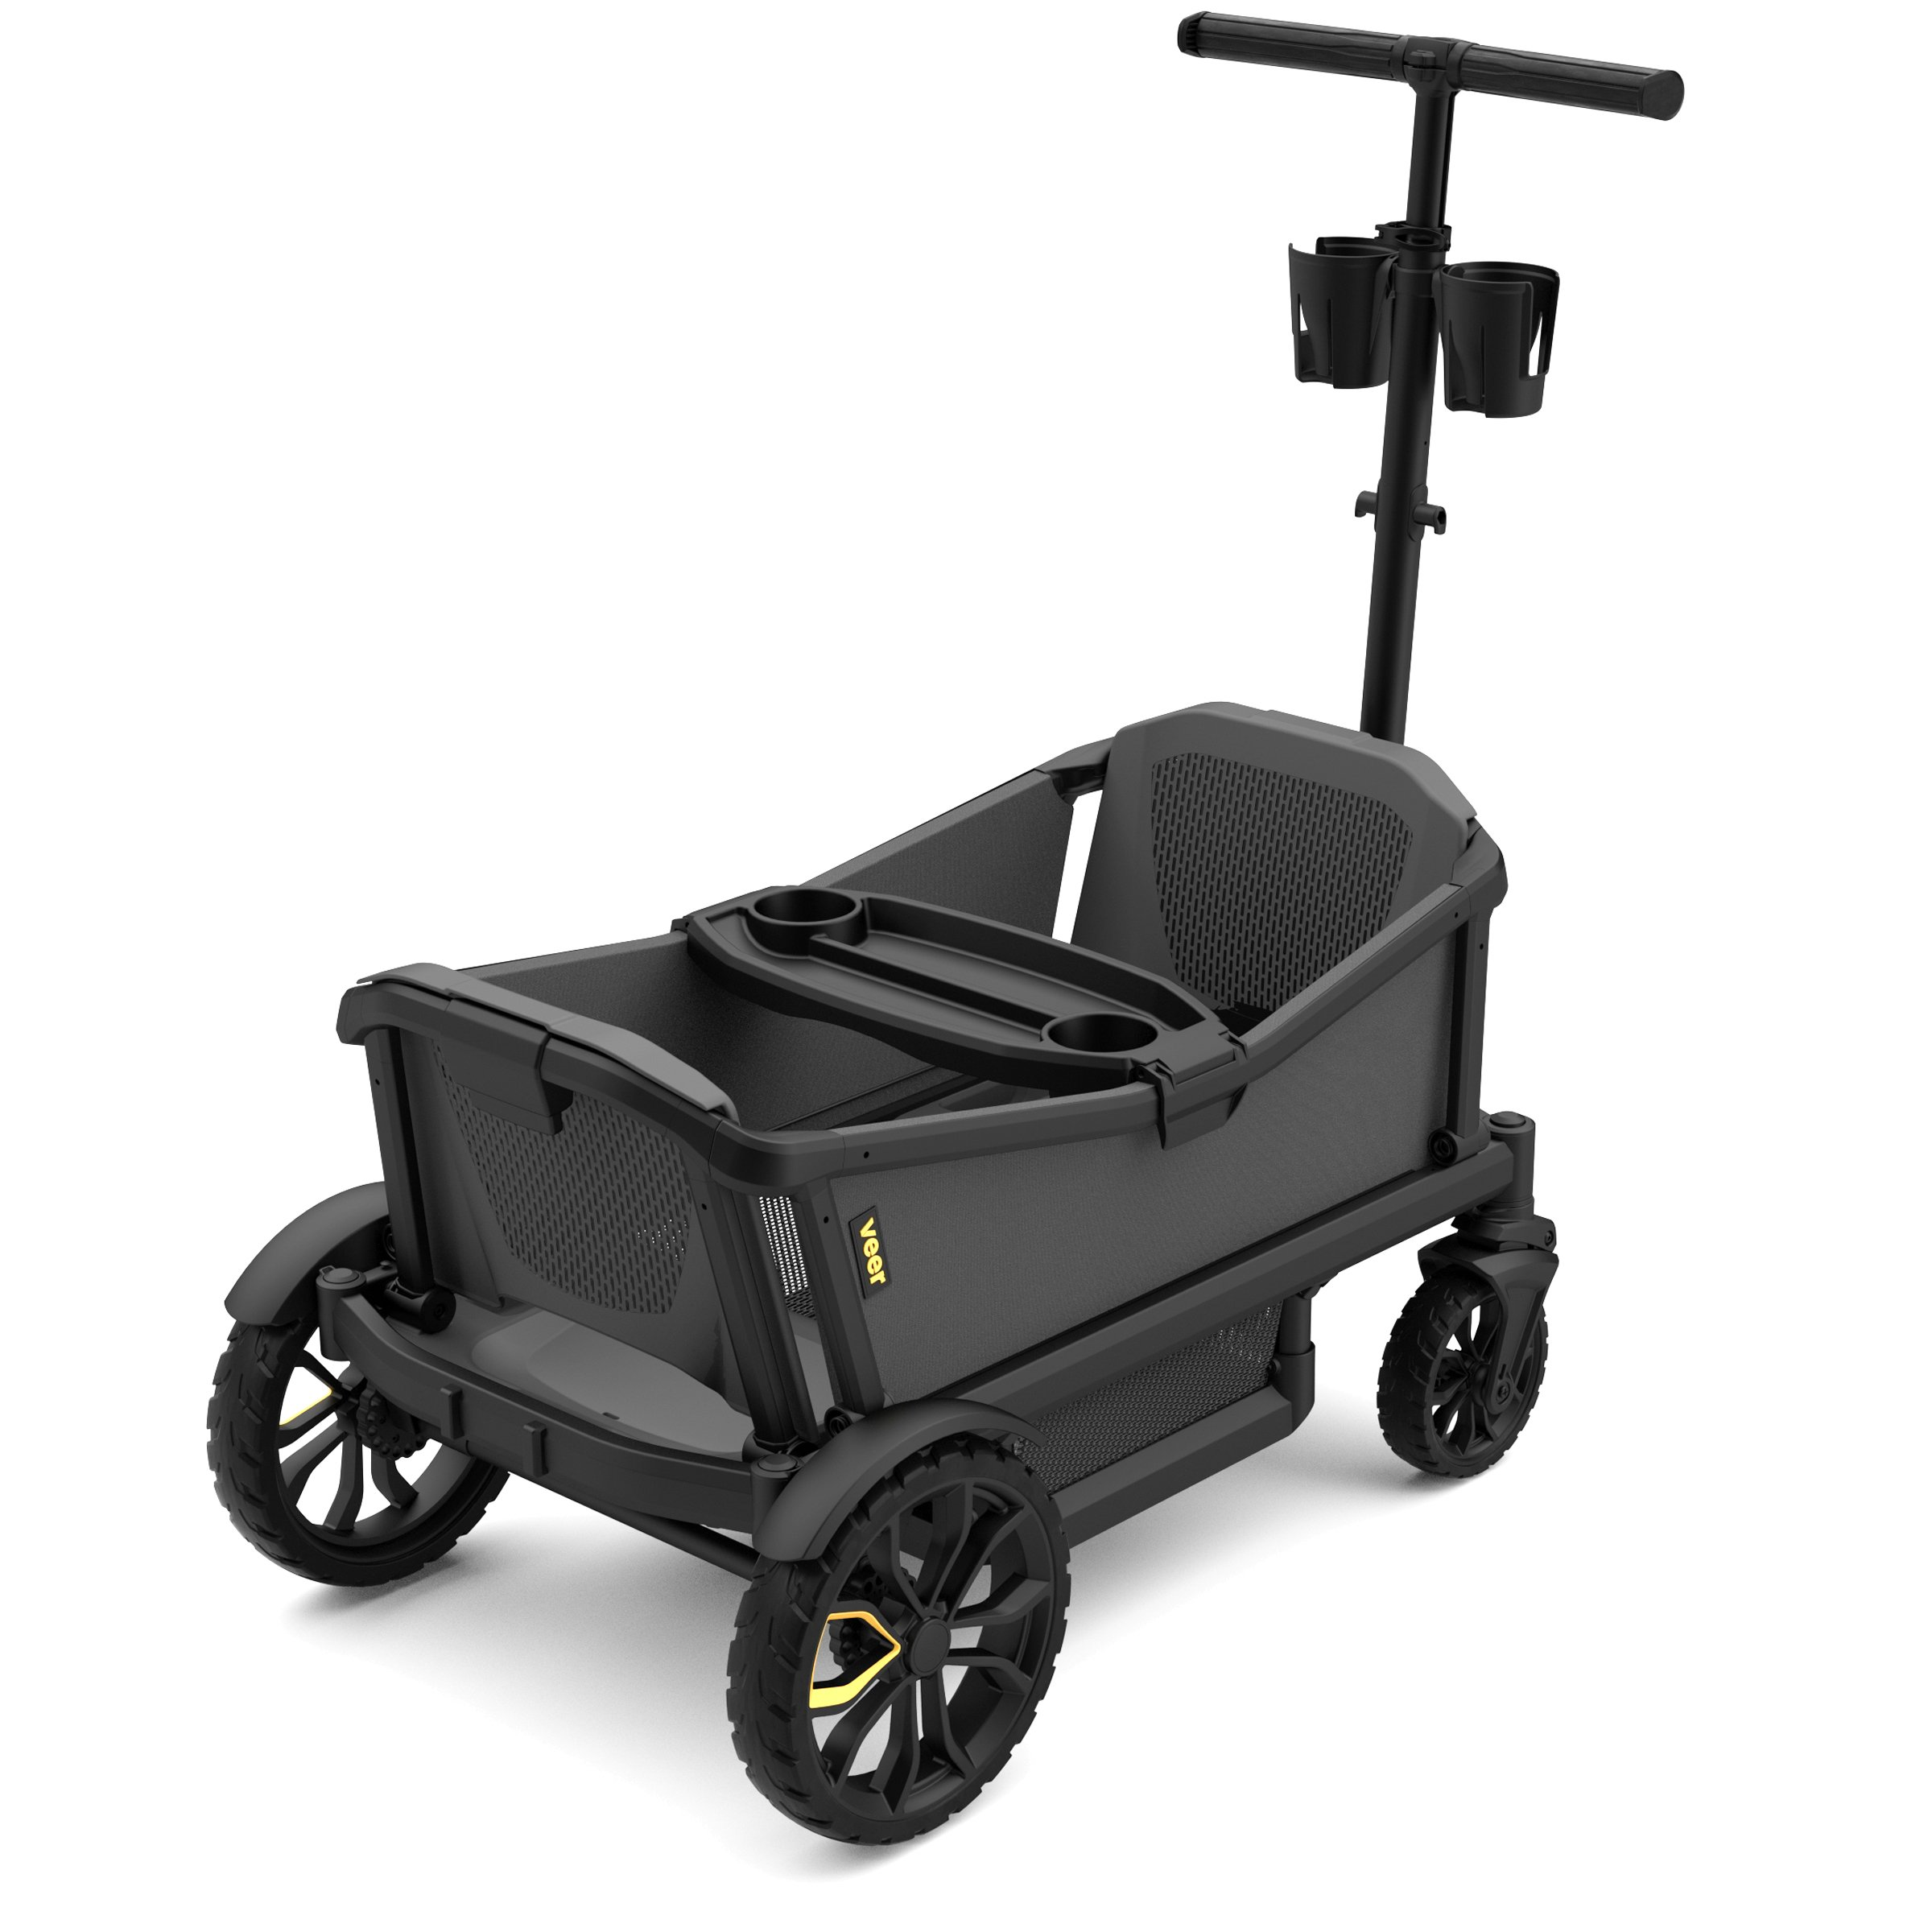 Veer Cruiser with Retractable Canopy | Next Generation Premium Stroller Wagon Hybrid by Veer (Image #5)